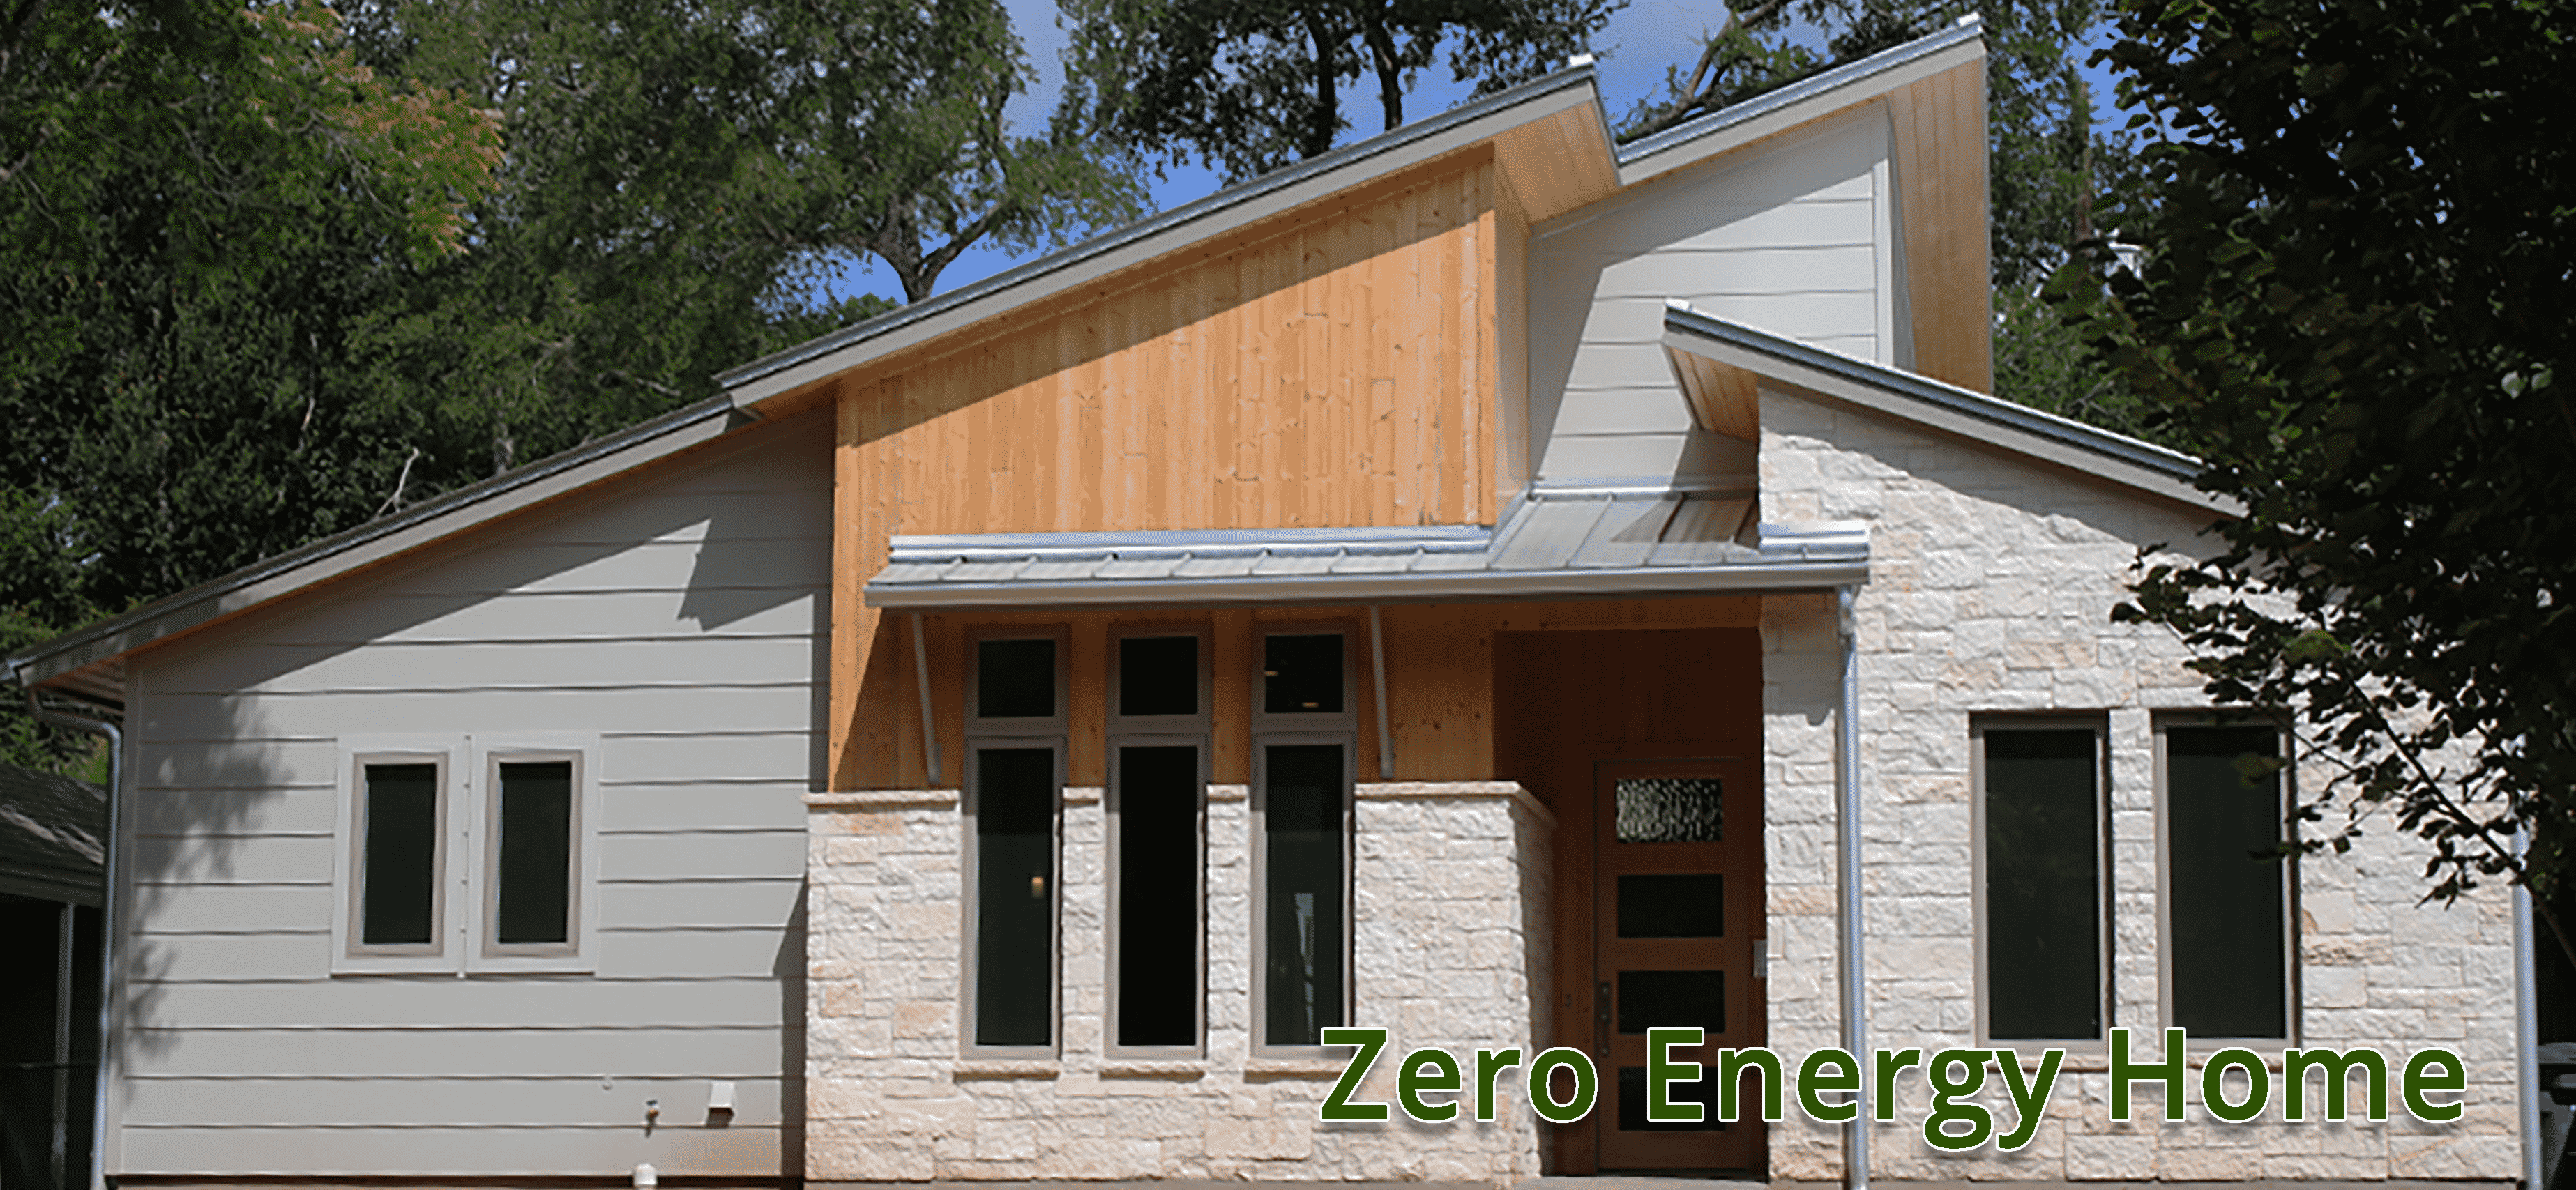 Zero Energy Home Sustainable Home Building